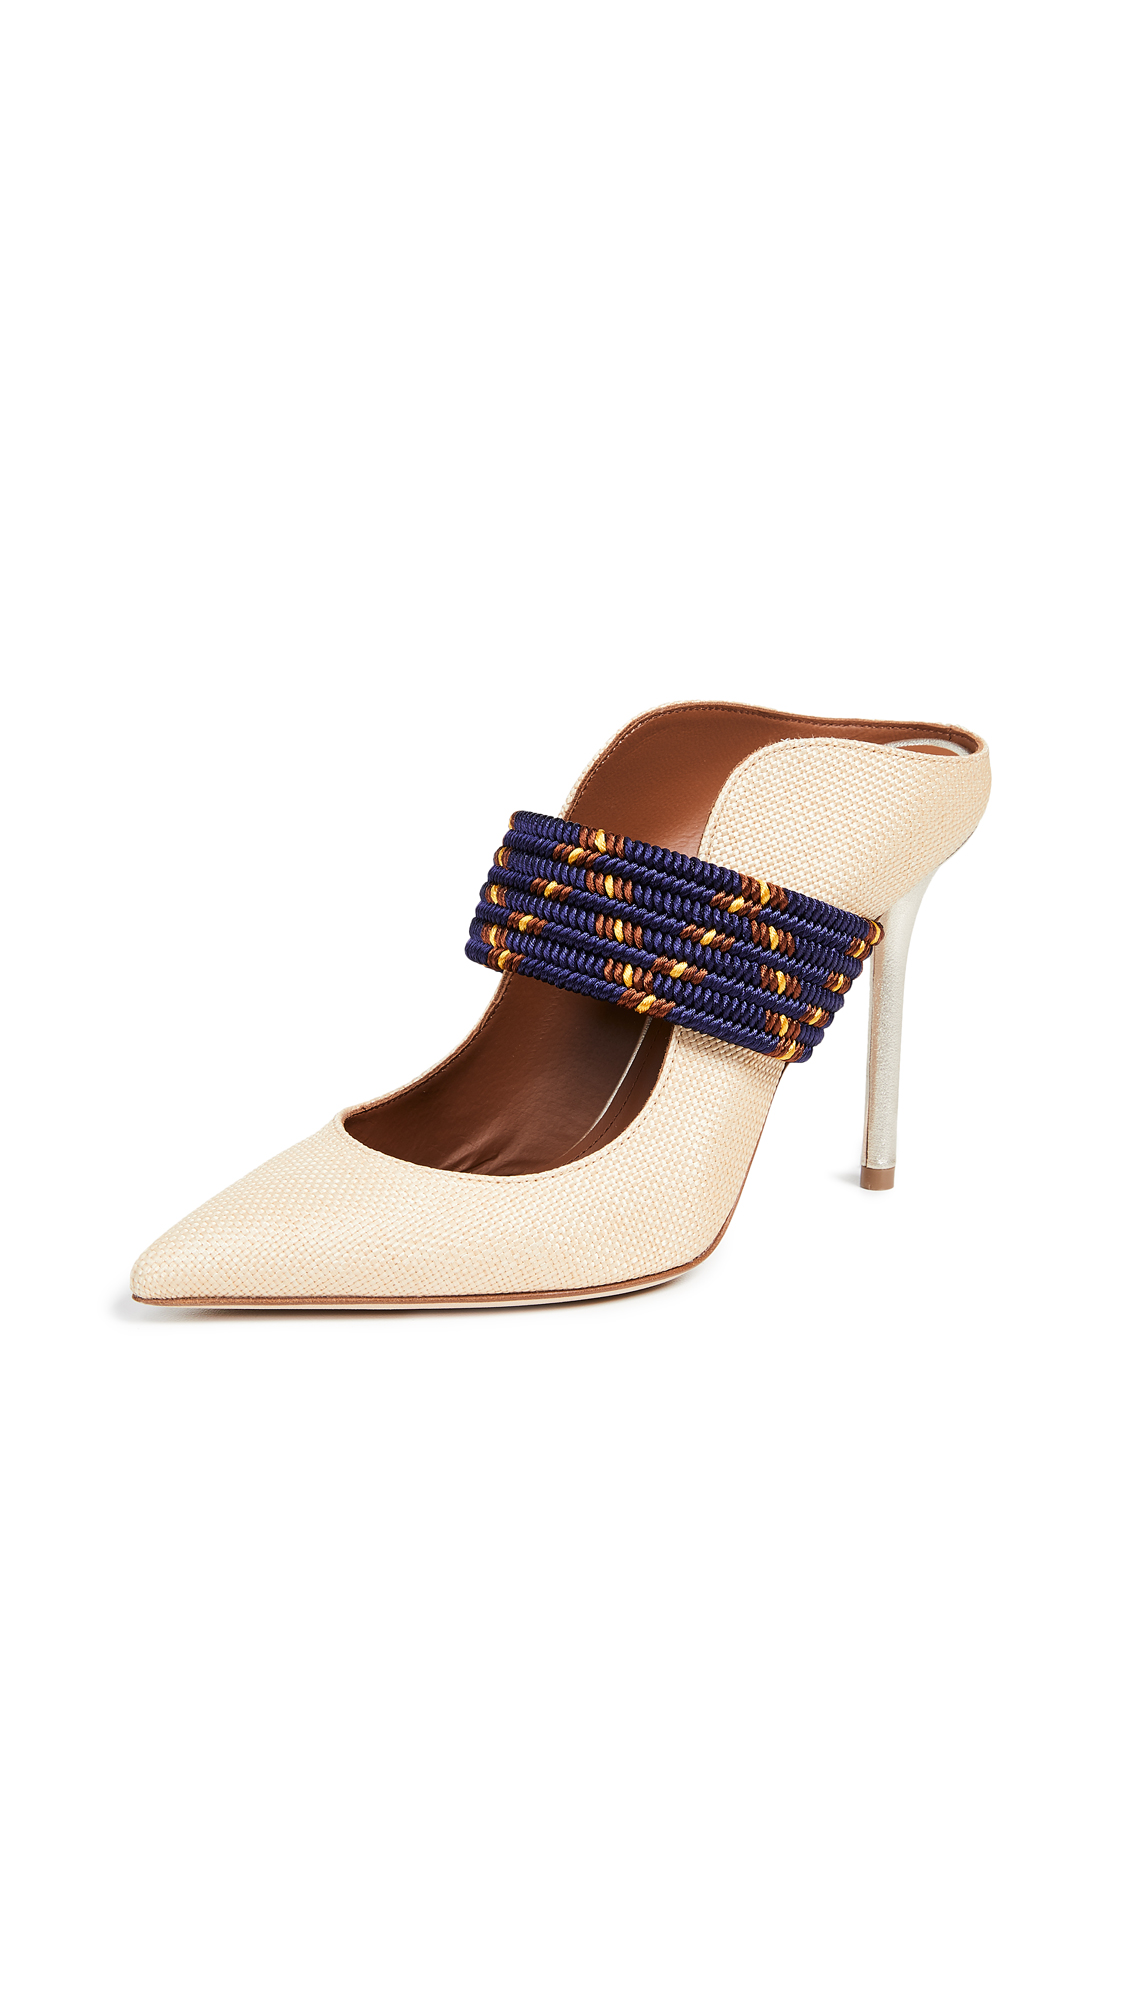 Malone Souliers by Roy Luwolt Mara 100 Mules - Gold/Midnight